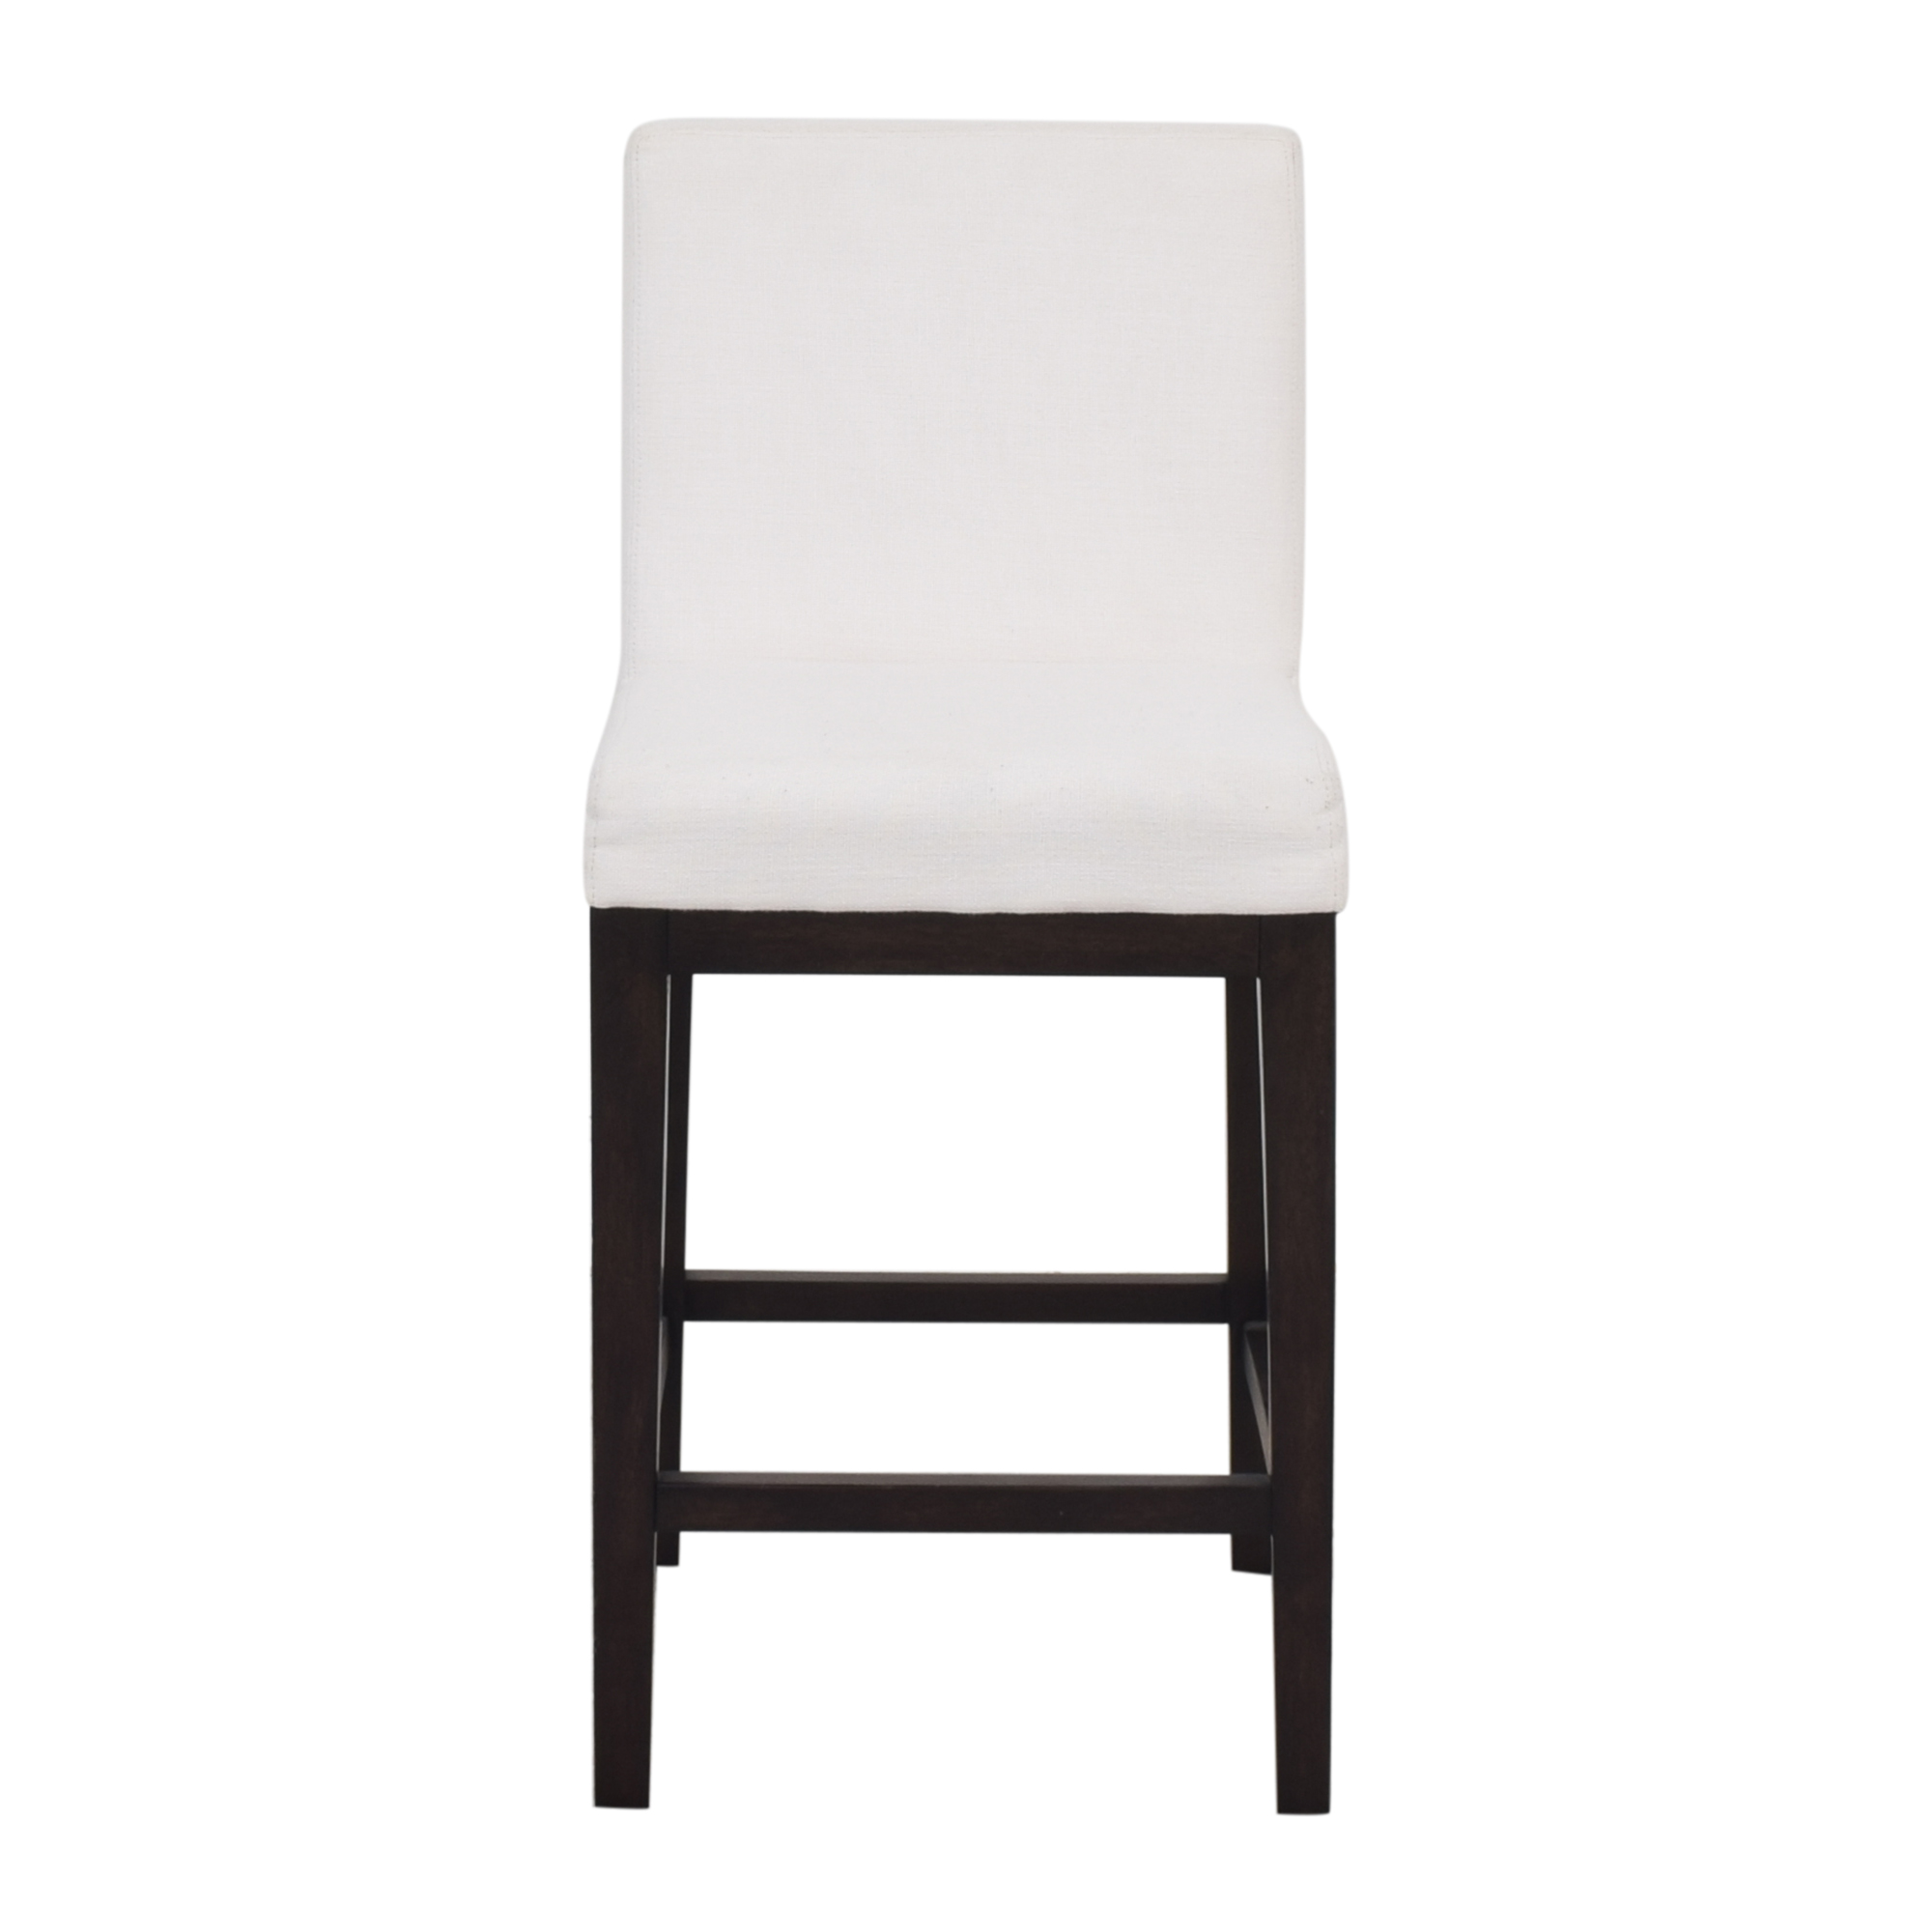 Restoration Hardware Restoration Hardware Morgan Armless Fabric Stool ct